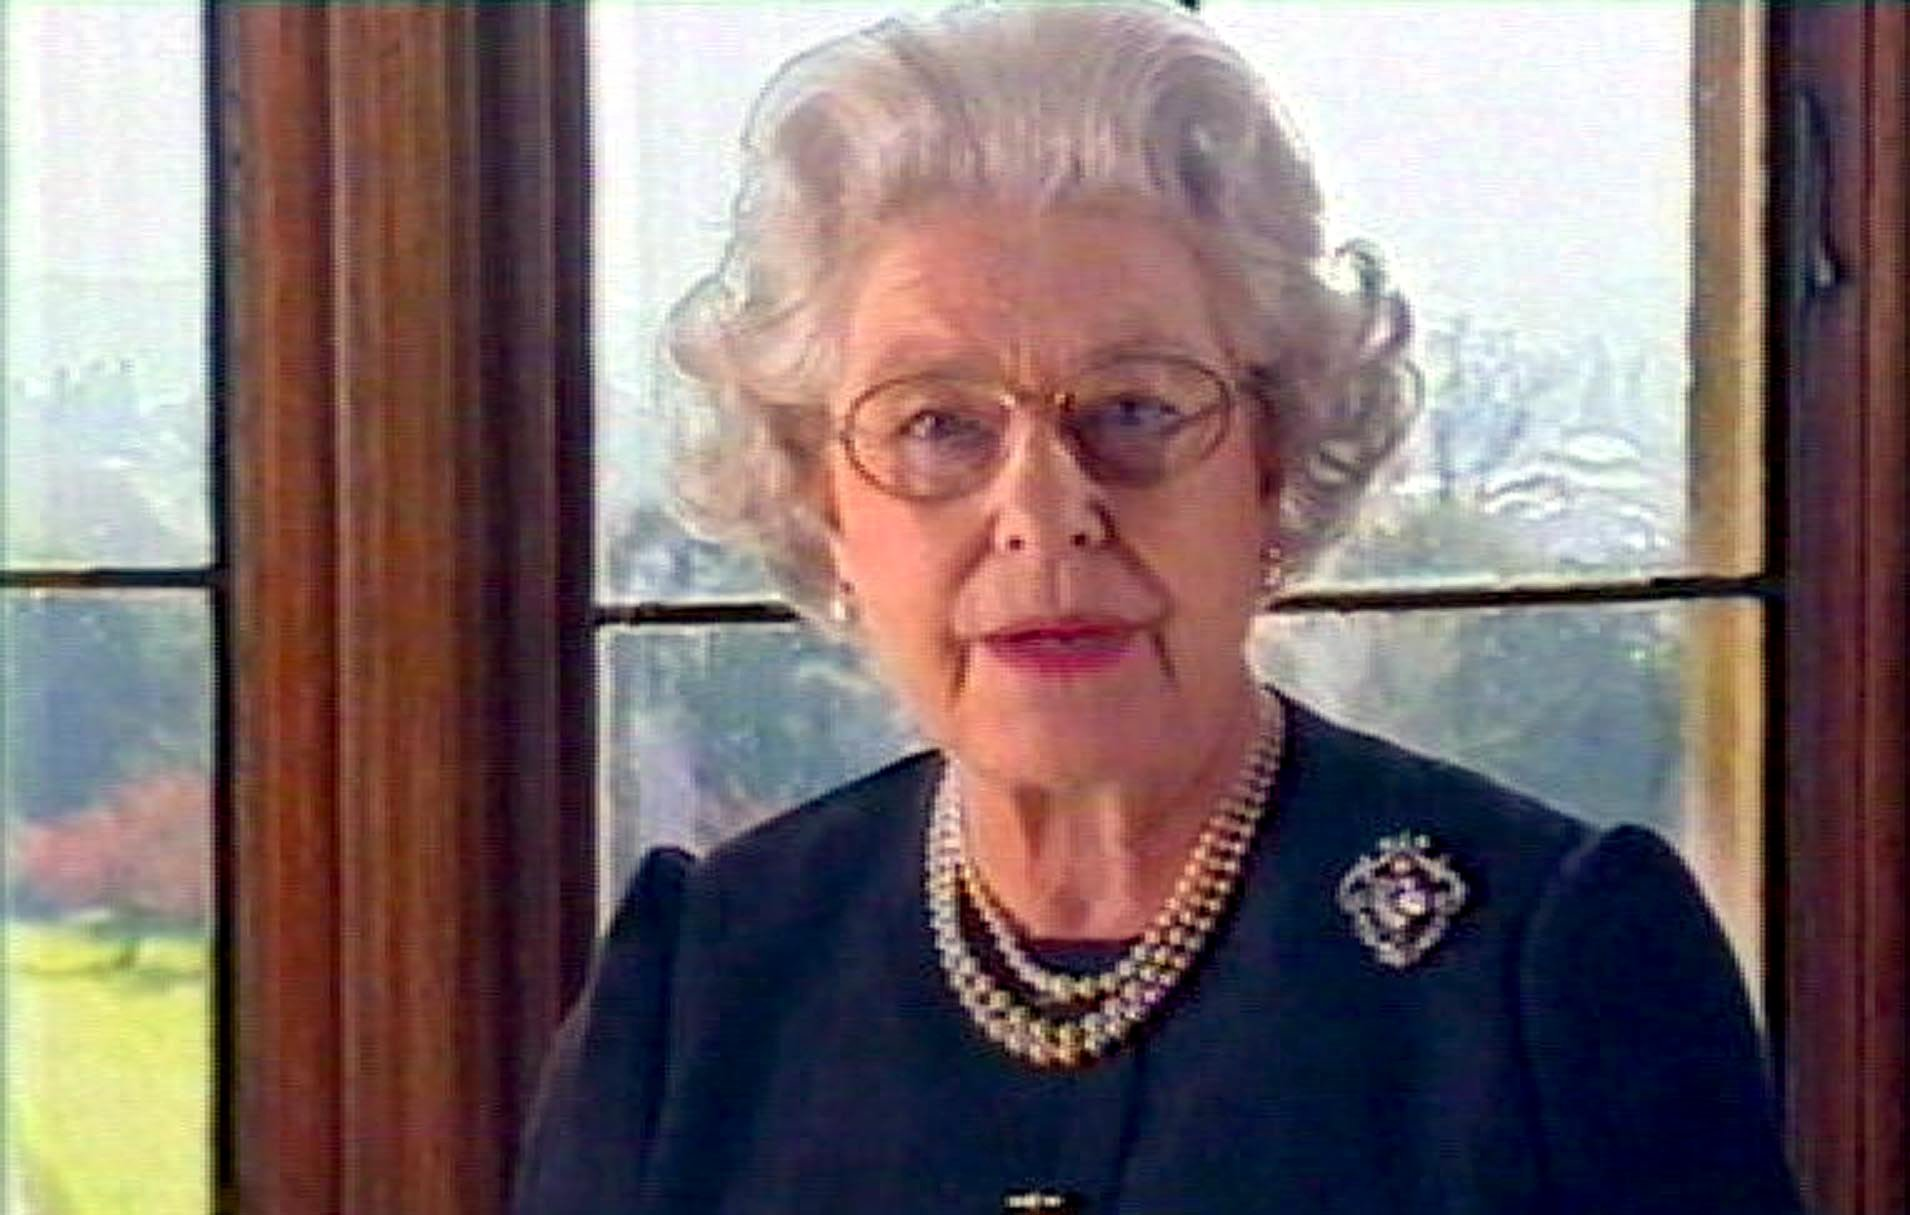 QUEEN ELIZABETH II THANK YOU SPEECH FOR PUBLIC SUPPORT AFTER THE DEATH OF HER MOTHER 8 APRIL 02QUEEN ELIZABETH II THANK YOU SPEECH FOR PUBLIC SUPPORT AFTER THE DEATH OF HER MOTHER 8 APRIL 02